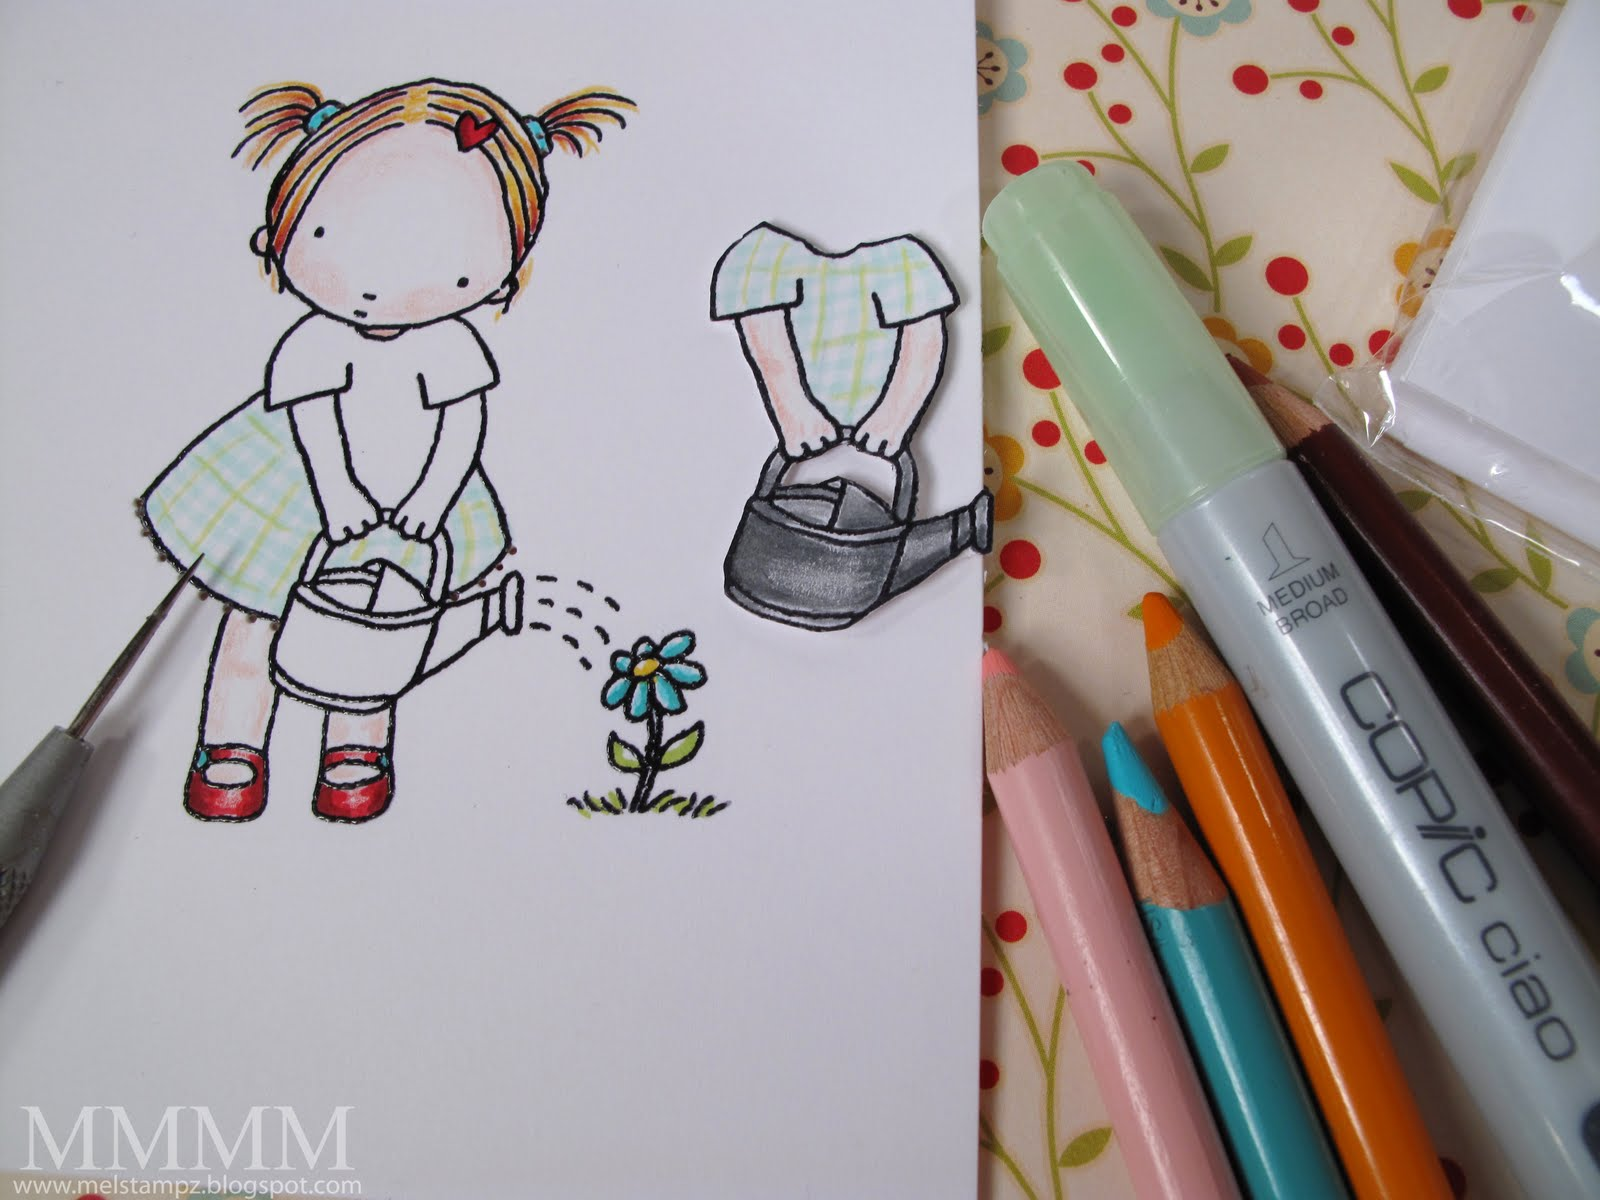 [A)+Stamp+colour+&+pierce+one+Pure+Innocence+Blooming+Good+Day+image.+Create+dimension+by+stamping+and+cutting+the+section+with+her+holding+the+watering+can.JPG]